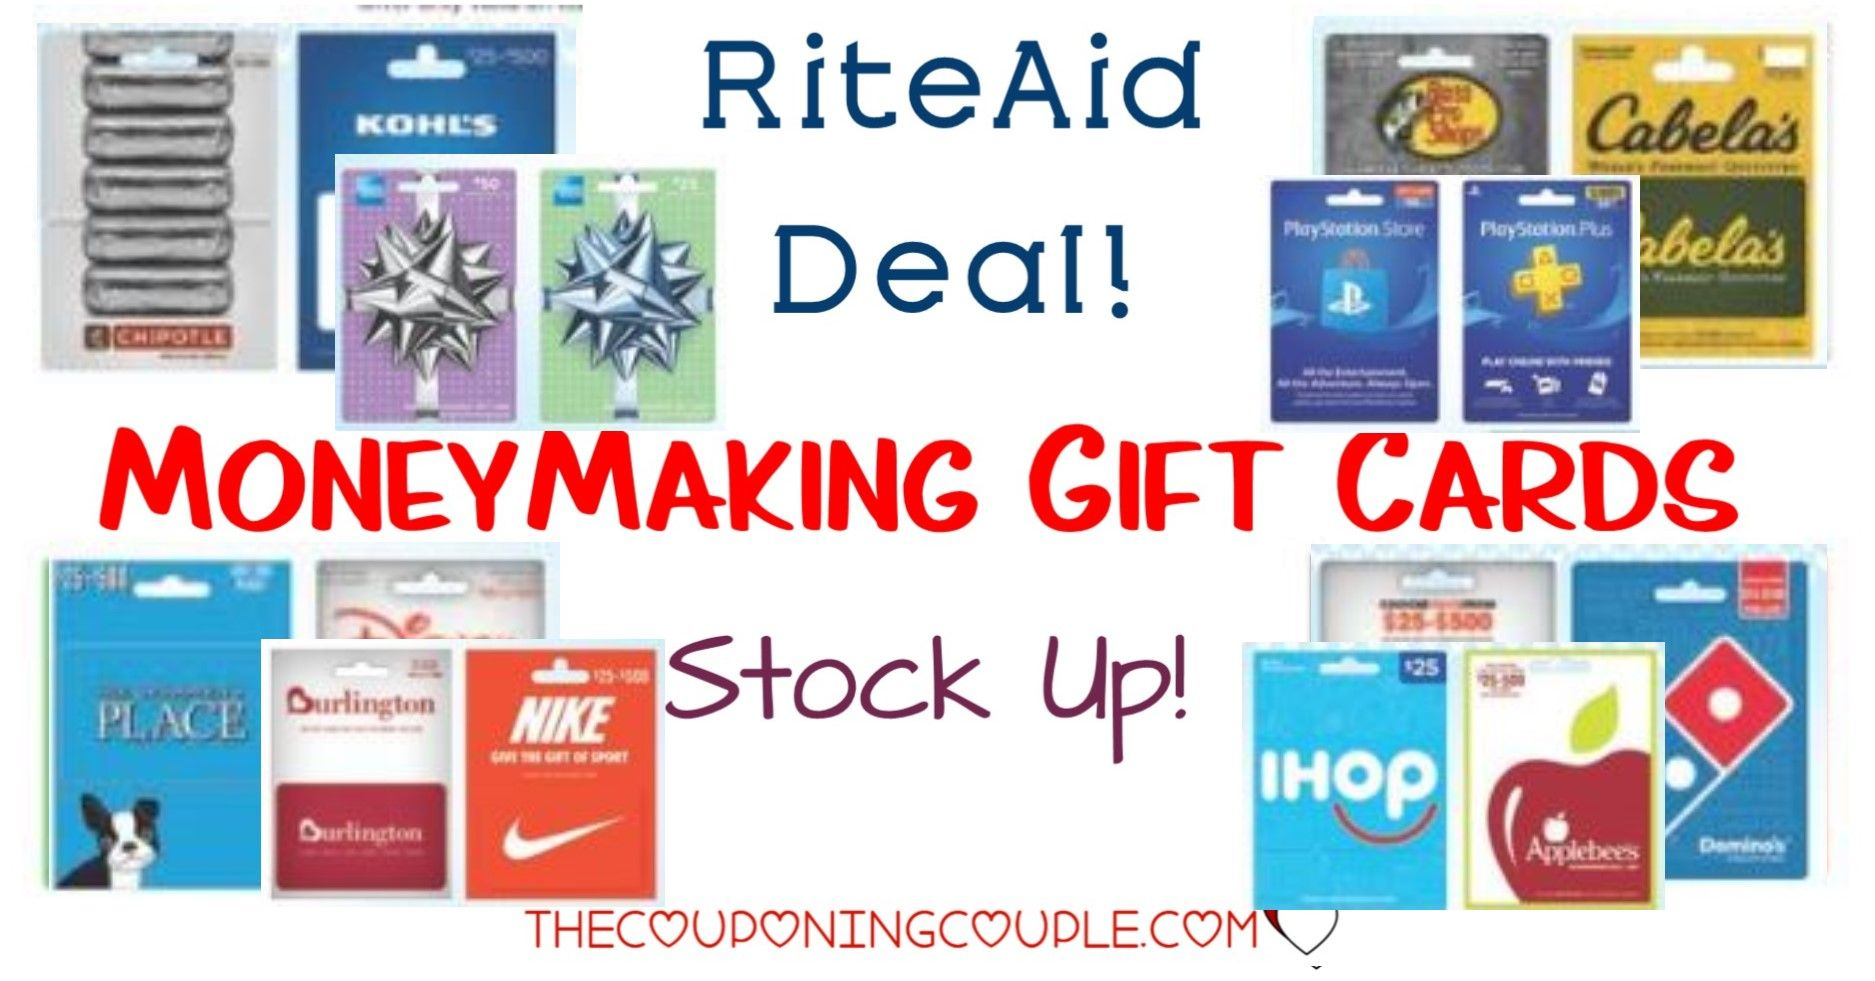 Moneymaking Gift Cards At Rite Aid Time To Stock Up Gift Card Gifts Buy Gift Cards